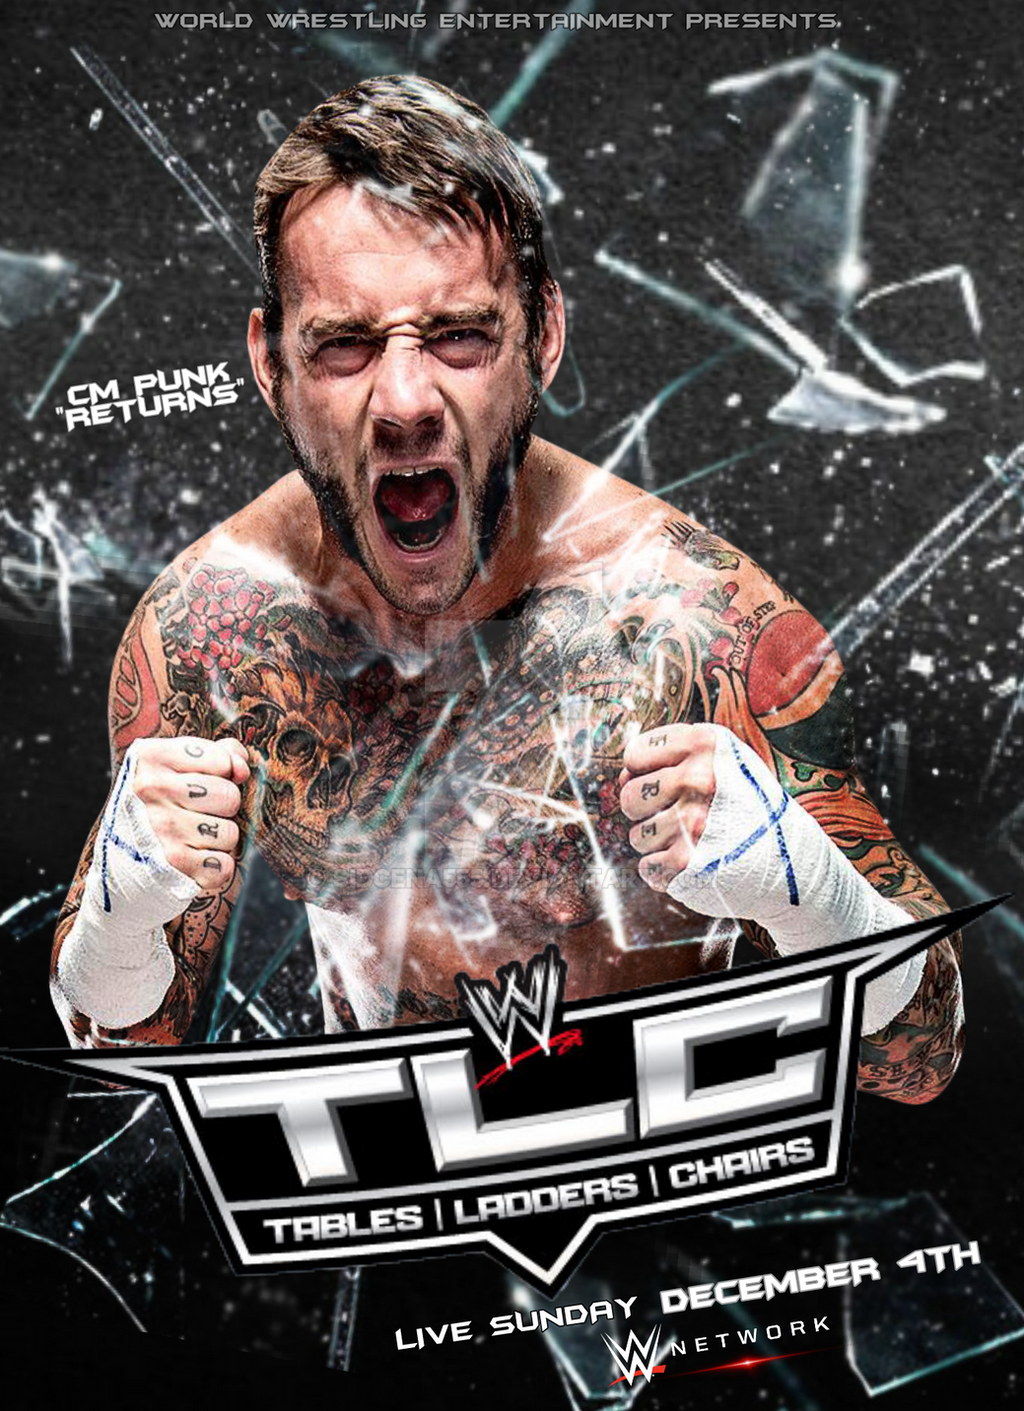 Wwe tables ladders and chairs 2013 poster - Chirantha 5 5 Wwe Tlc 2016 Poster By Sidcena555